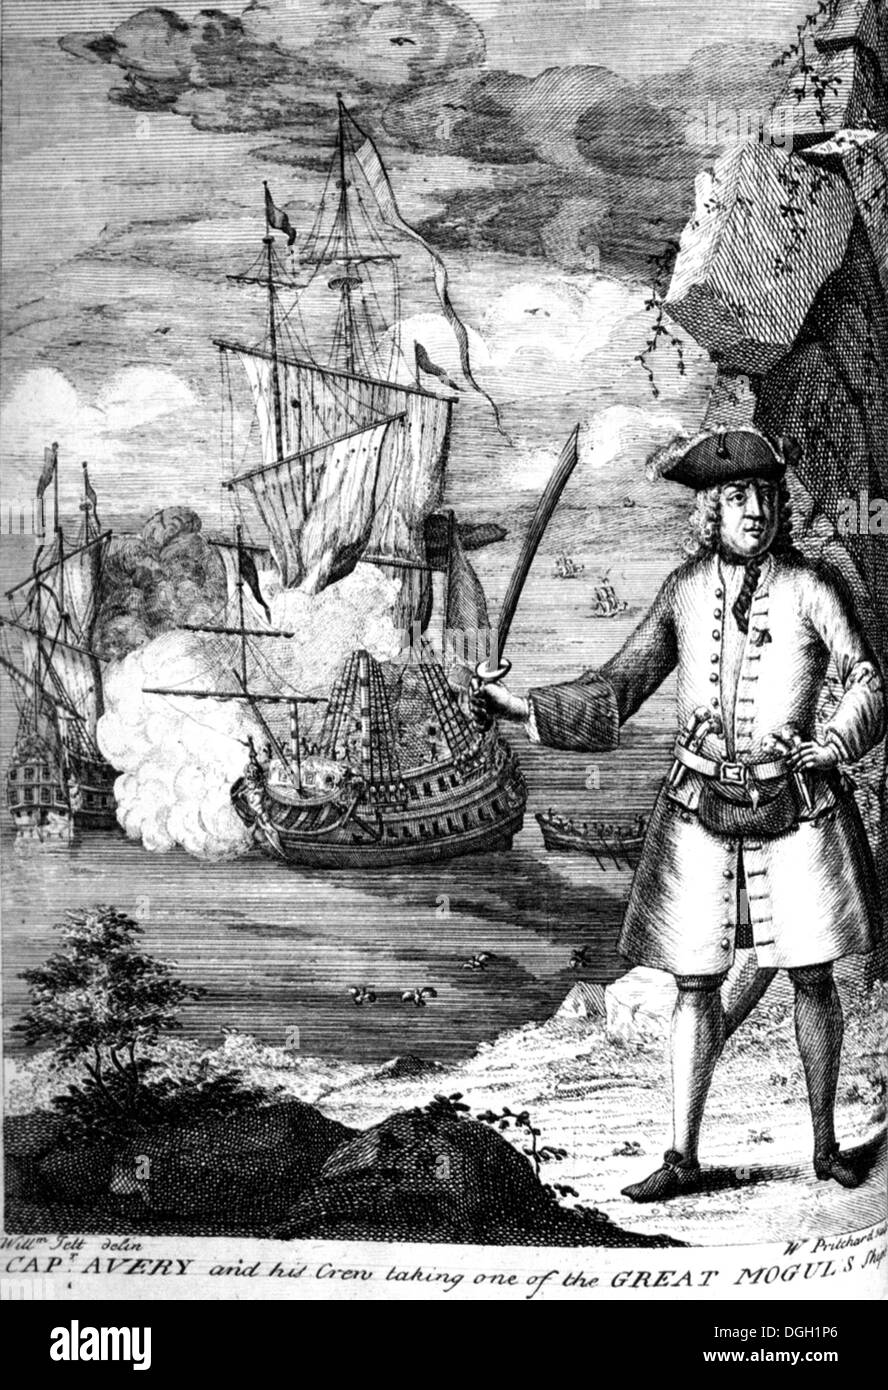 HENRY AVERY  (1659-1696 ?) English pirate taking one of the Great Mogul's Ships in an 18th century engaving - Stock Image